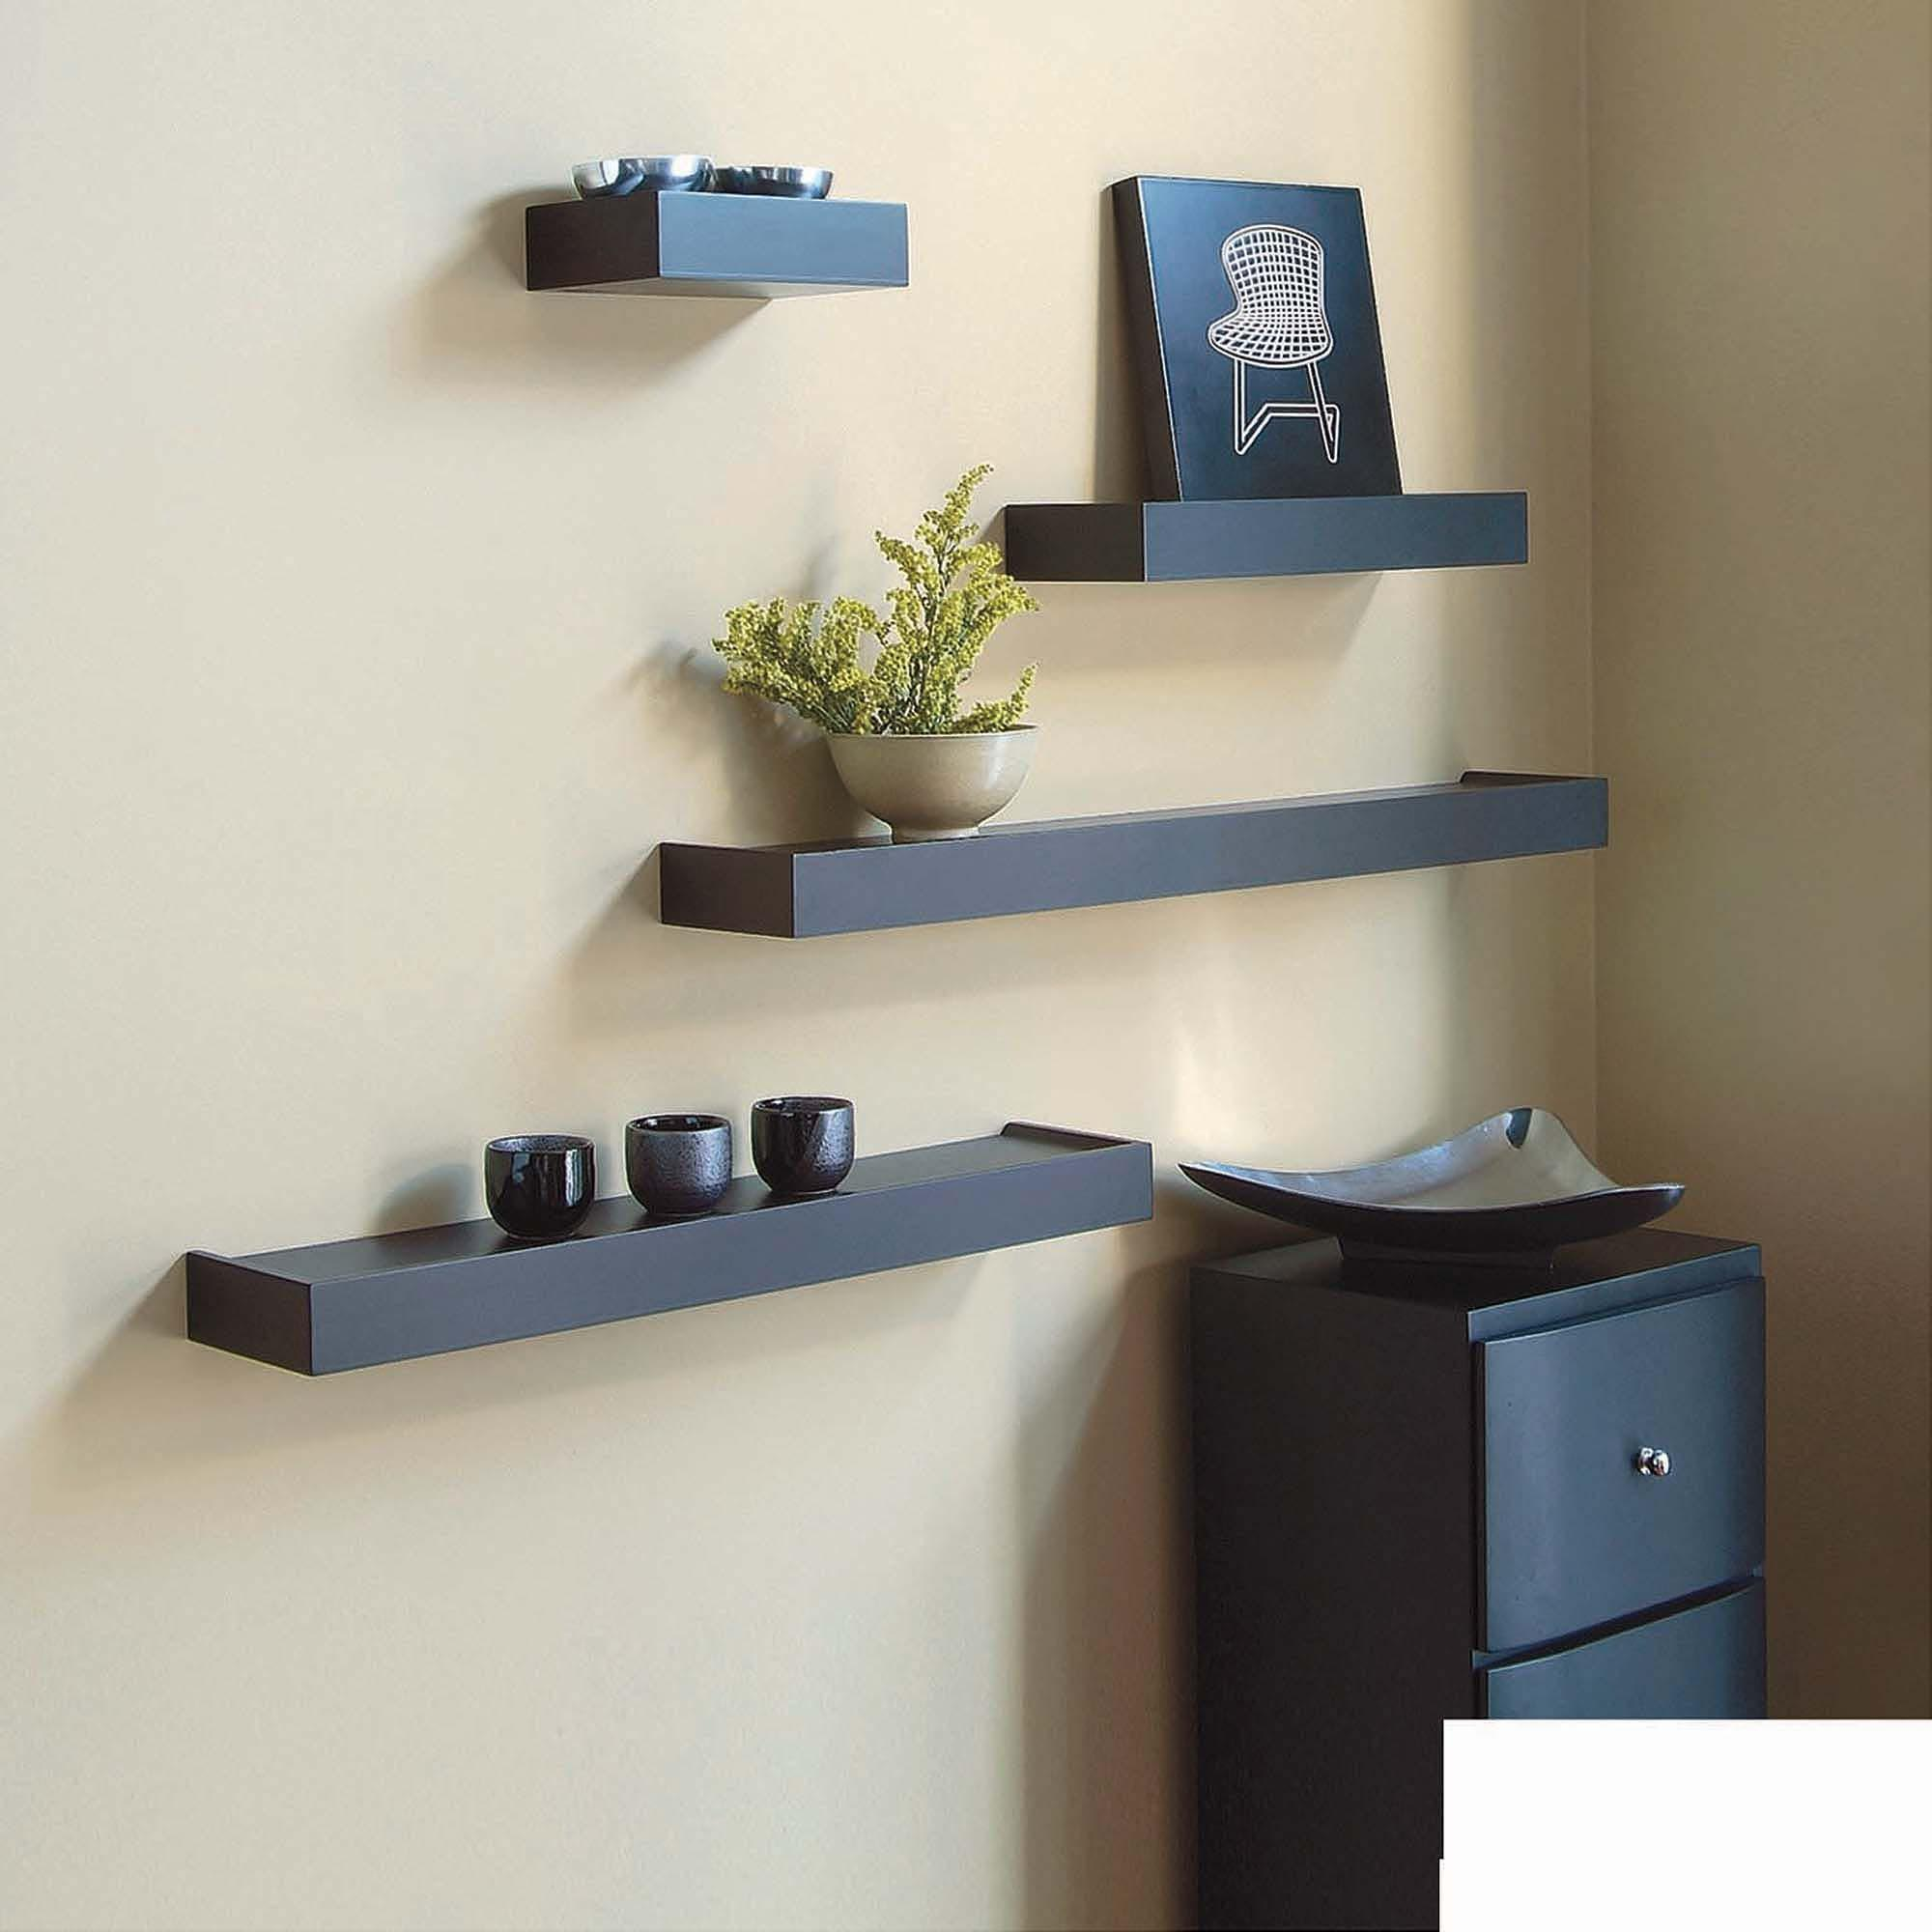 Pictures Of Wall Shelves Decorative Corner Wall Shelves Best Decor Things